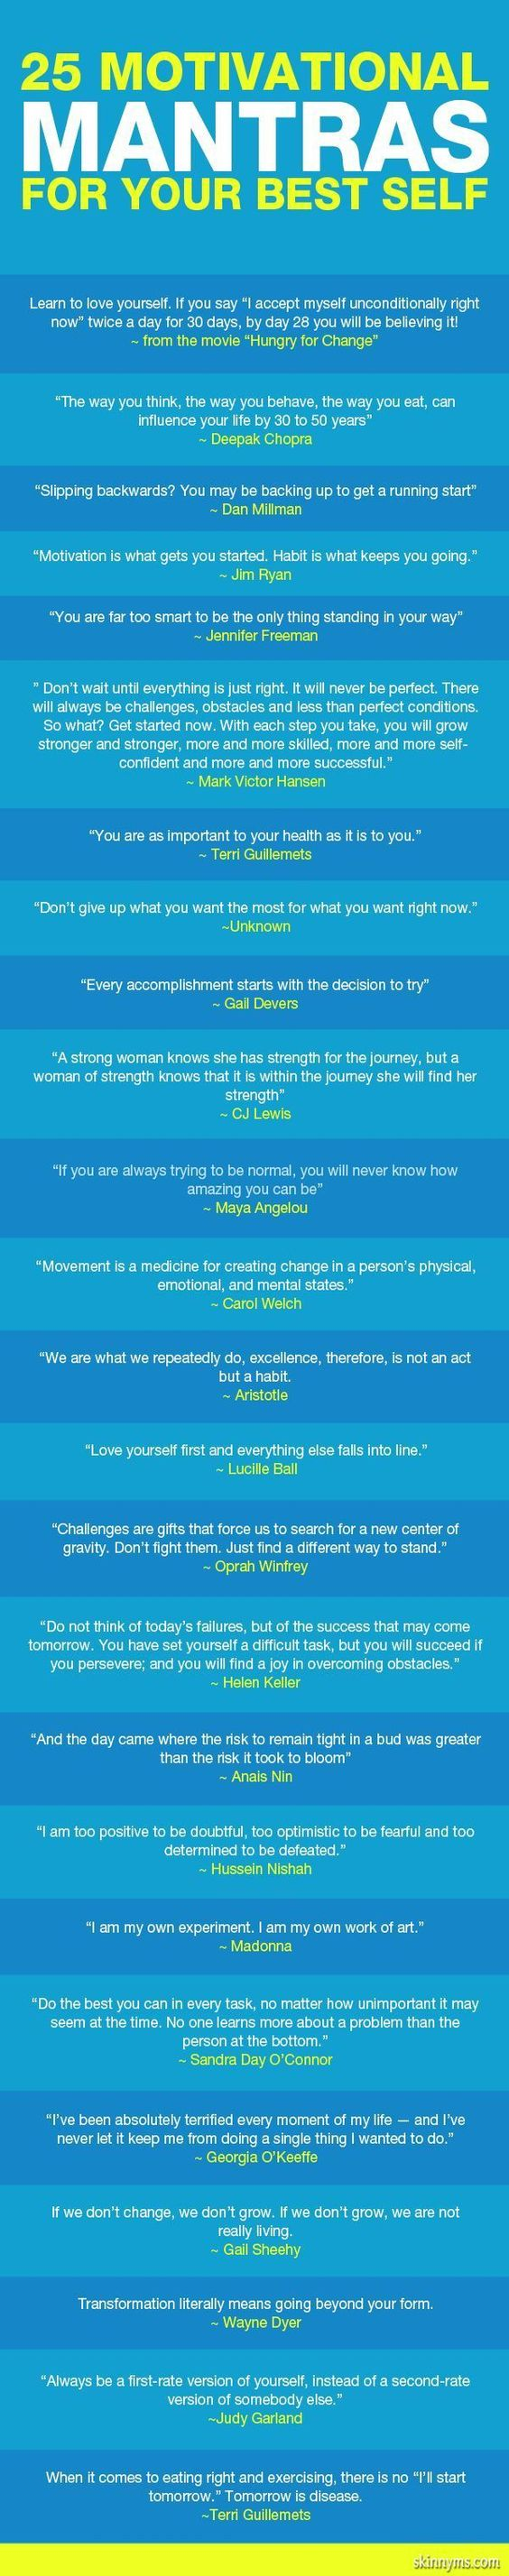 25 Motivational Mantras--these are great and keep me going when I'm not as motivated as I need to be :)  #motivation #mantras